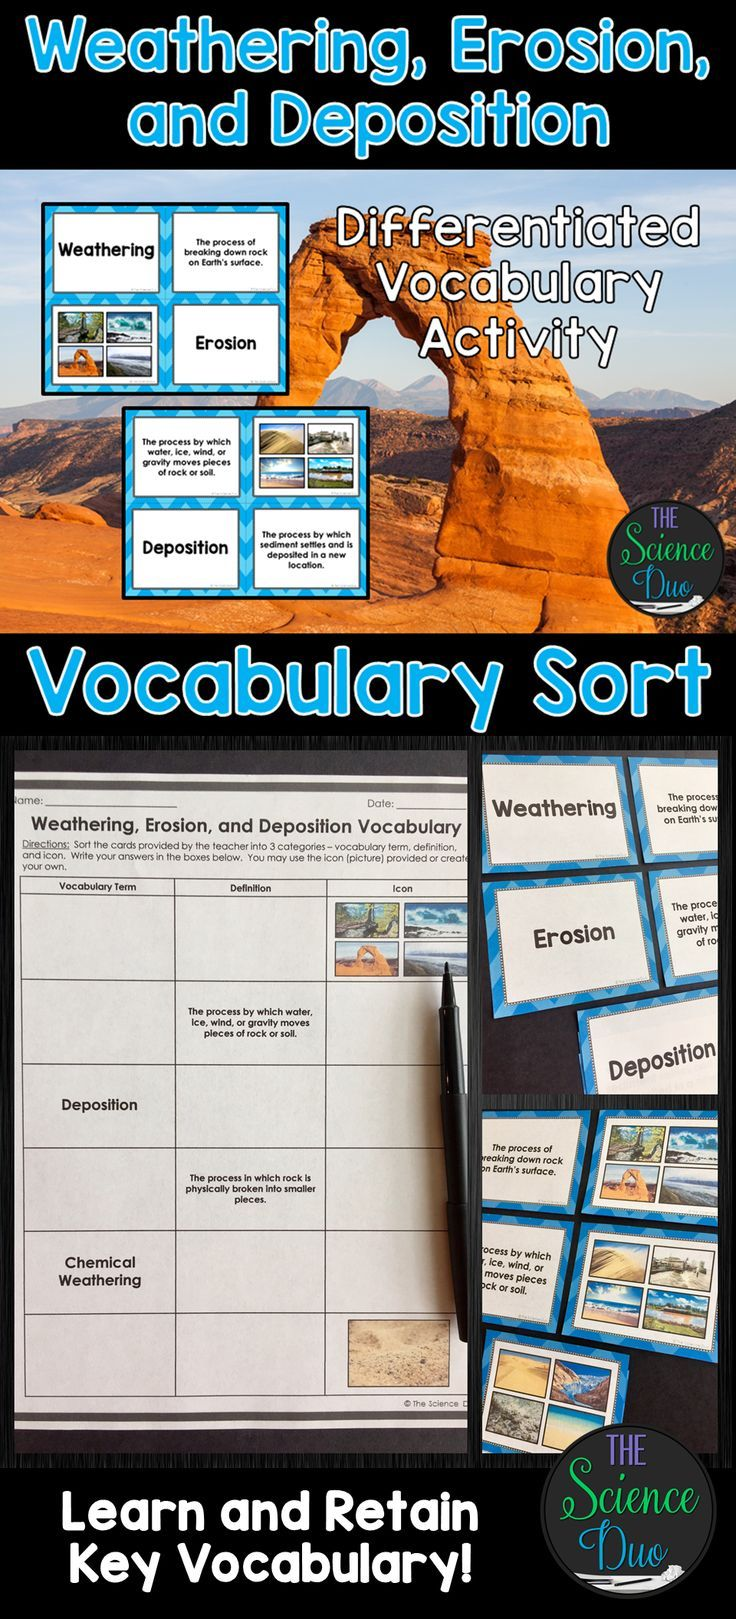 weathering, erosion, and deposition vocabulary sort | science for